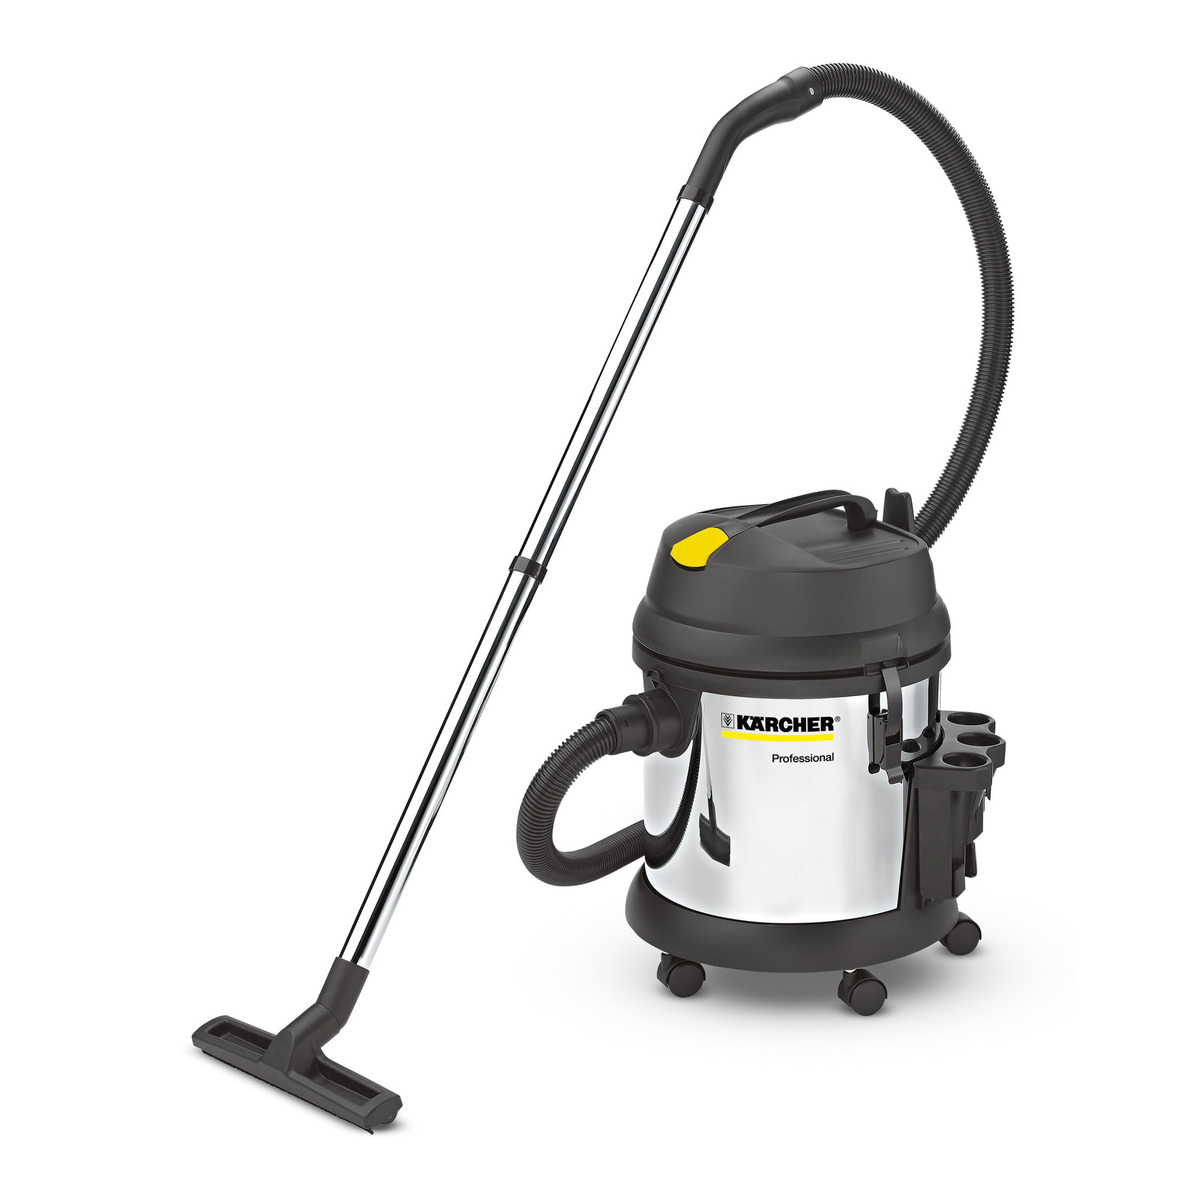 Karcher Wet and dry vacuum cleaner NT 27/1 Me